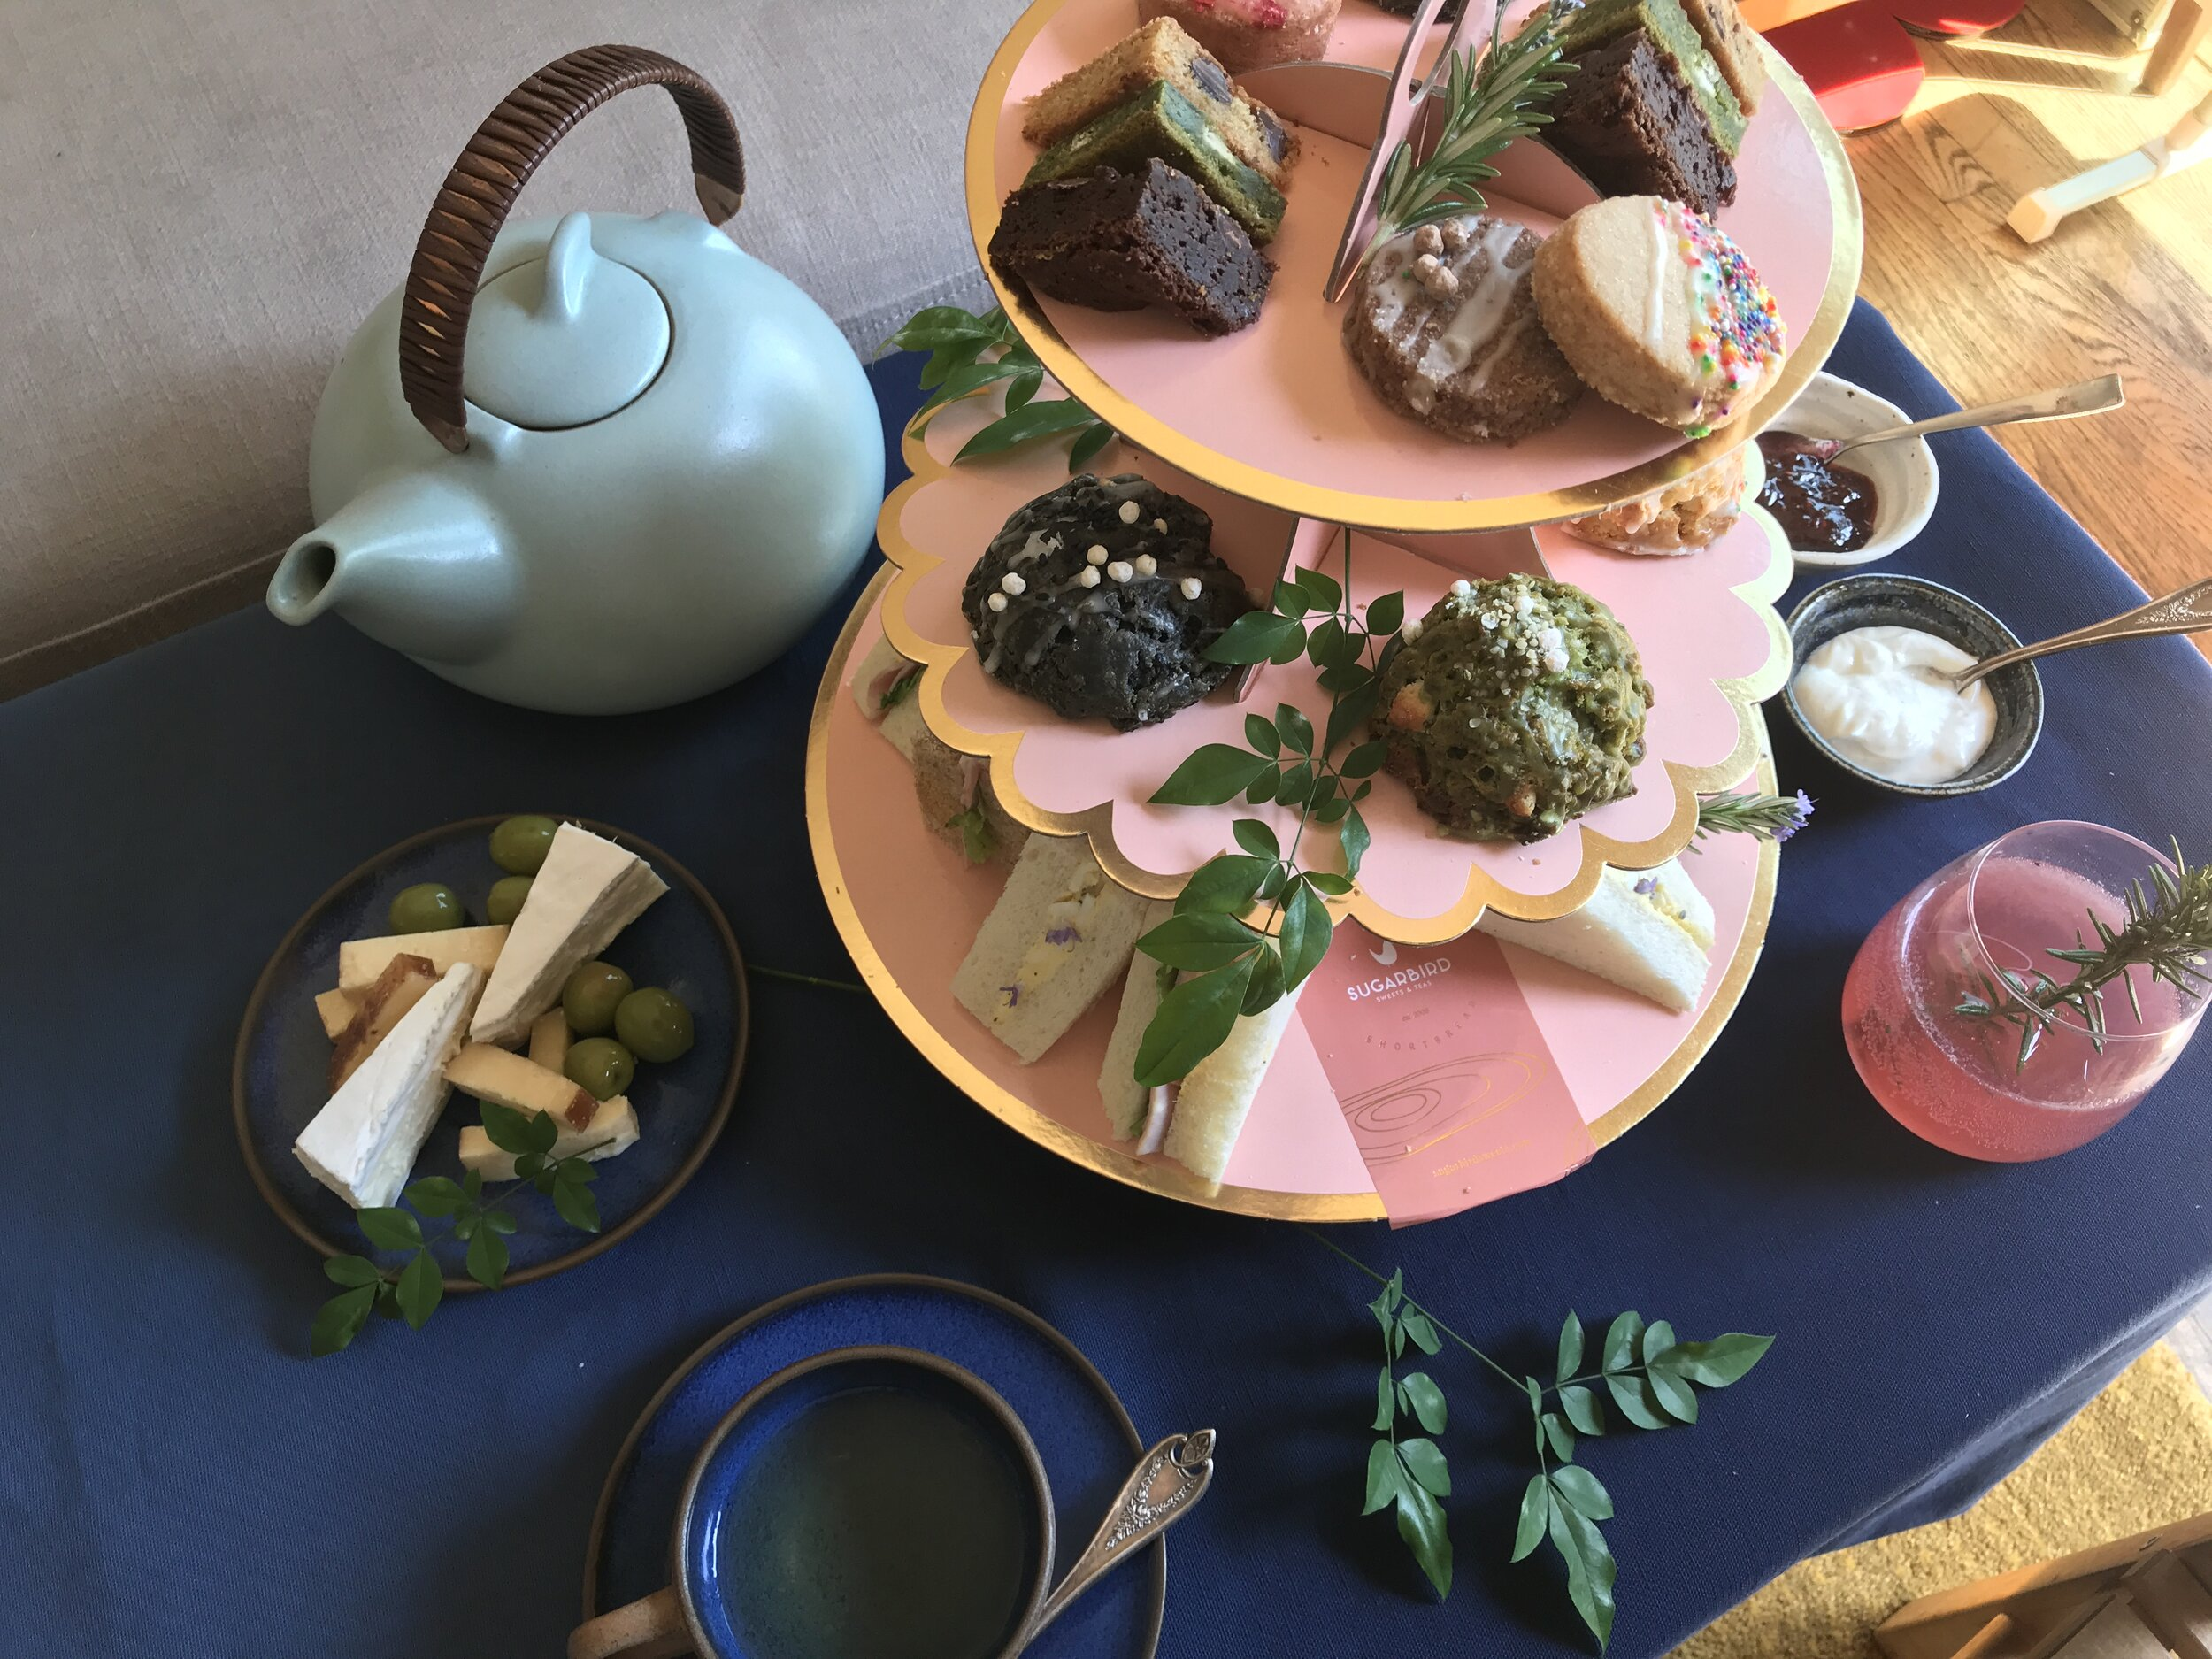 Host Your Own Virtual Tea Party With Your Own Afternoon Tea Gift Box Filled With Tea Sandwiches Buttery Scones And Clotted Cream Direct Sugarbird Sweets Teas Afternoon Tea Experience That Delights